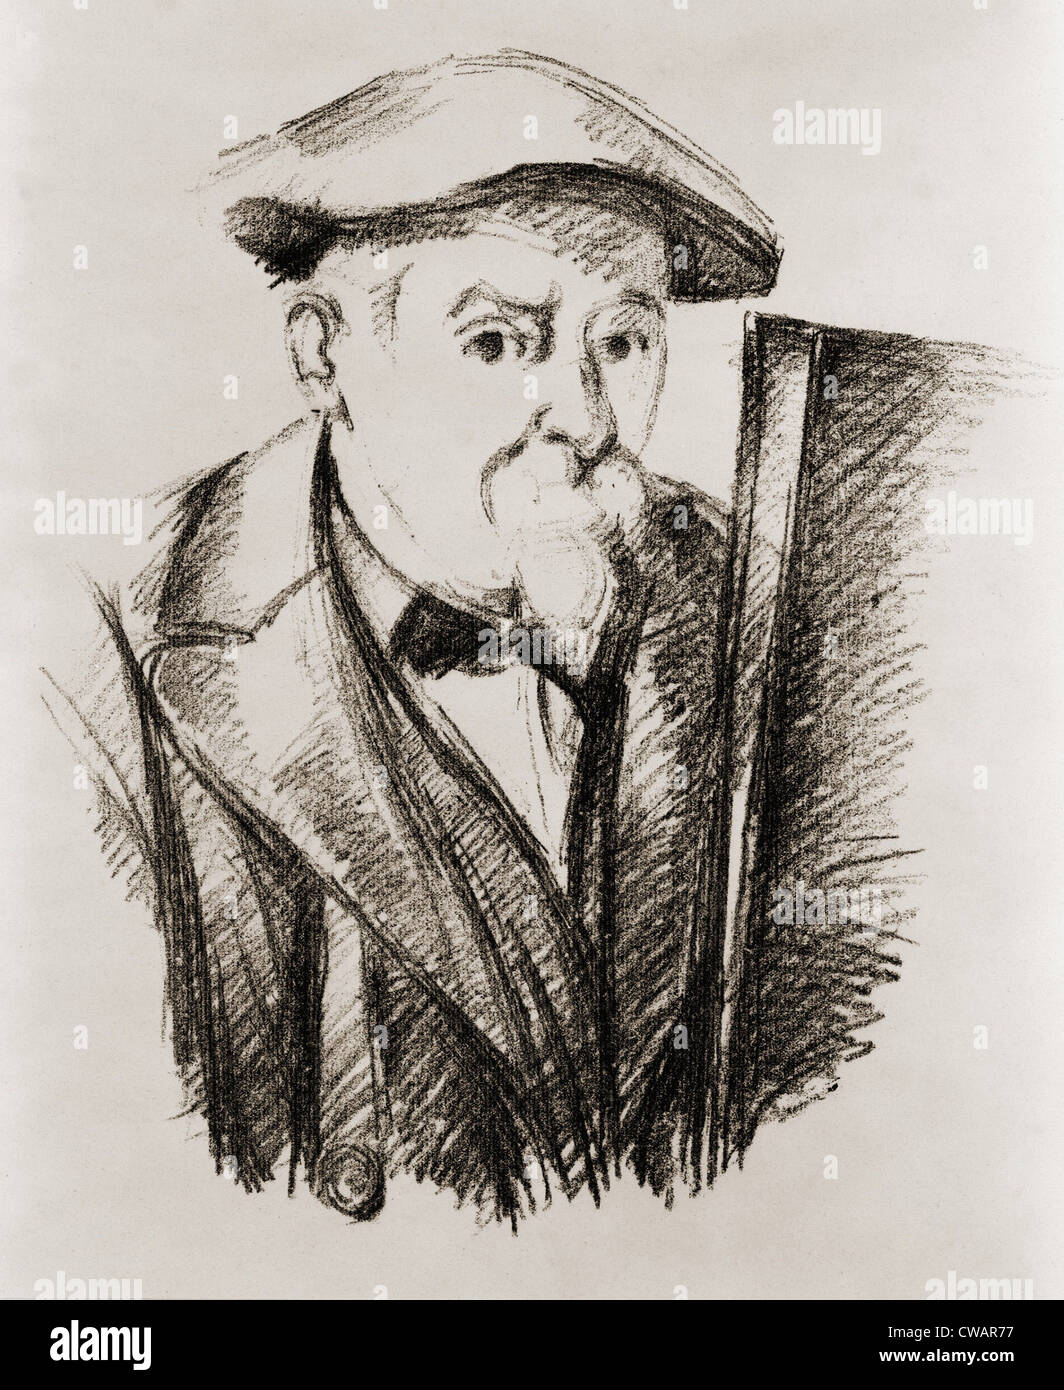 Paul Cezanne (1839-1906), French Post Impressionist painter, in a self portrait at his easel. Ca. 1900. - Stock Image